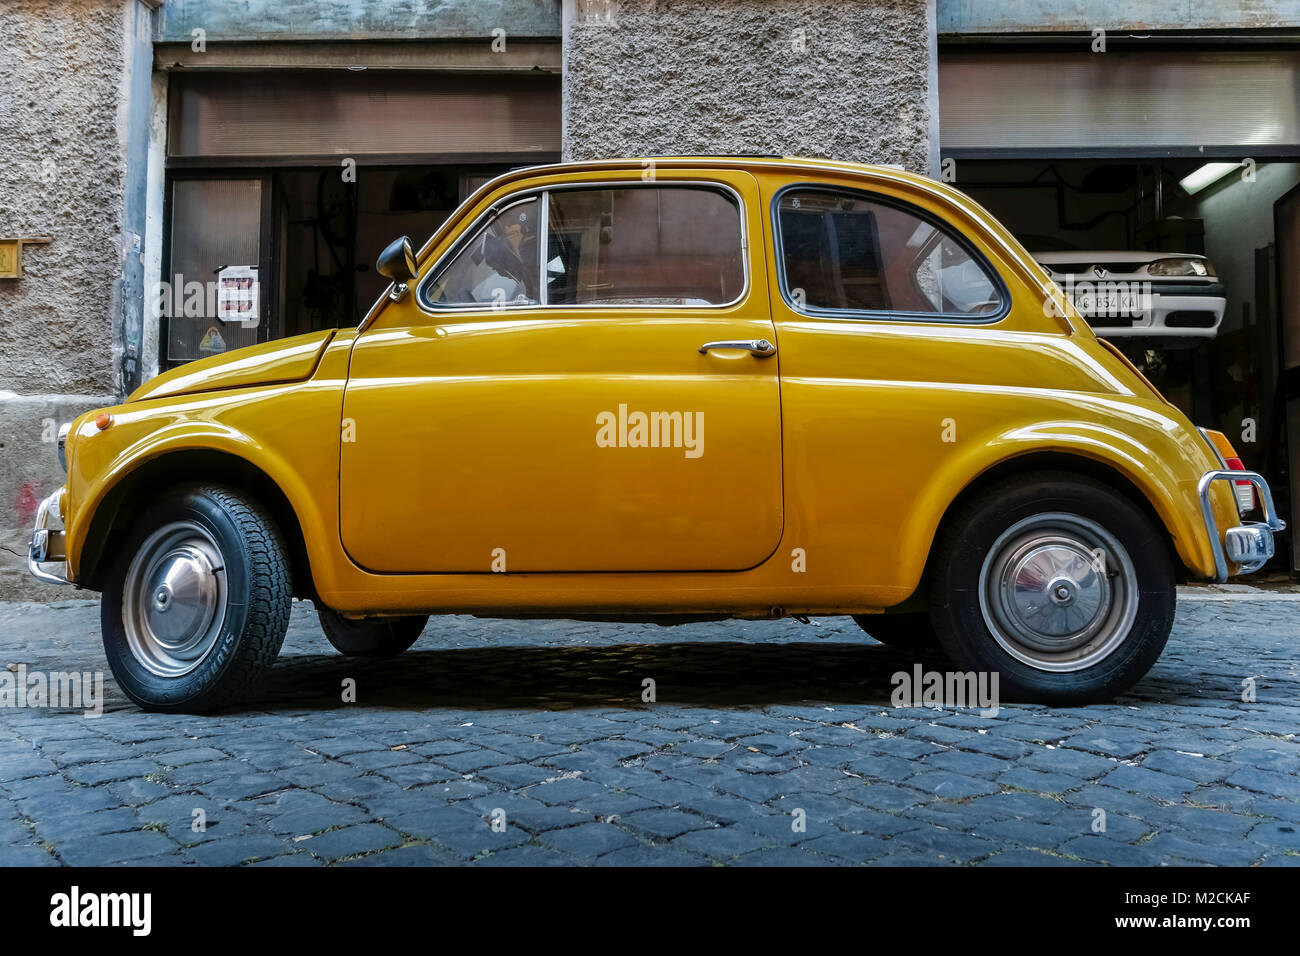 fiat 500 classic italian car stockfotos fiat 500 classic italian car bilder alamy. Black Bedroom Furniture Sets. Home Design Ideas